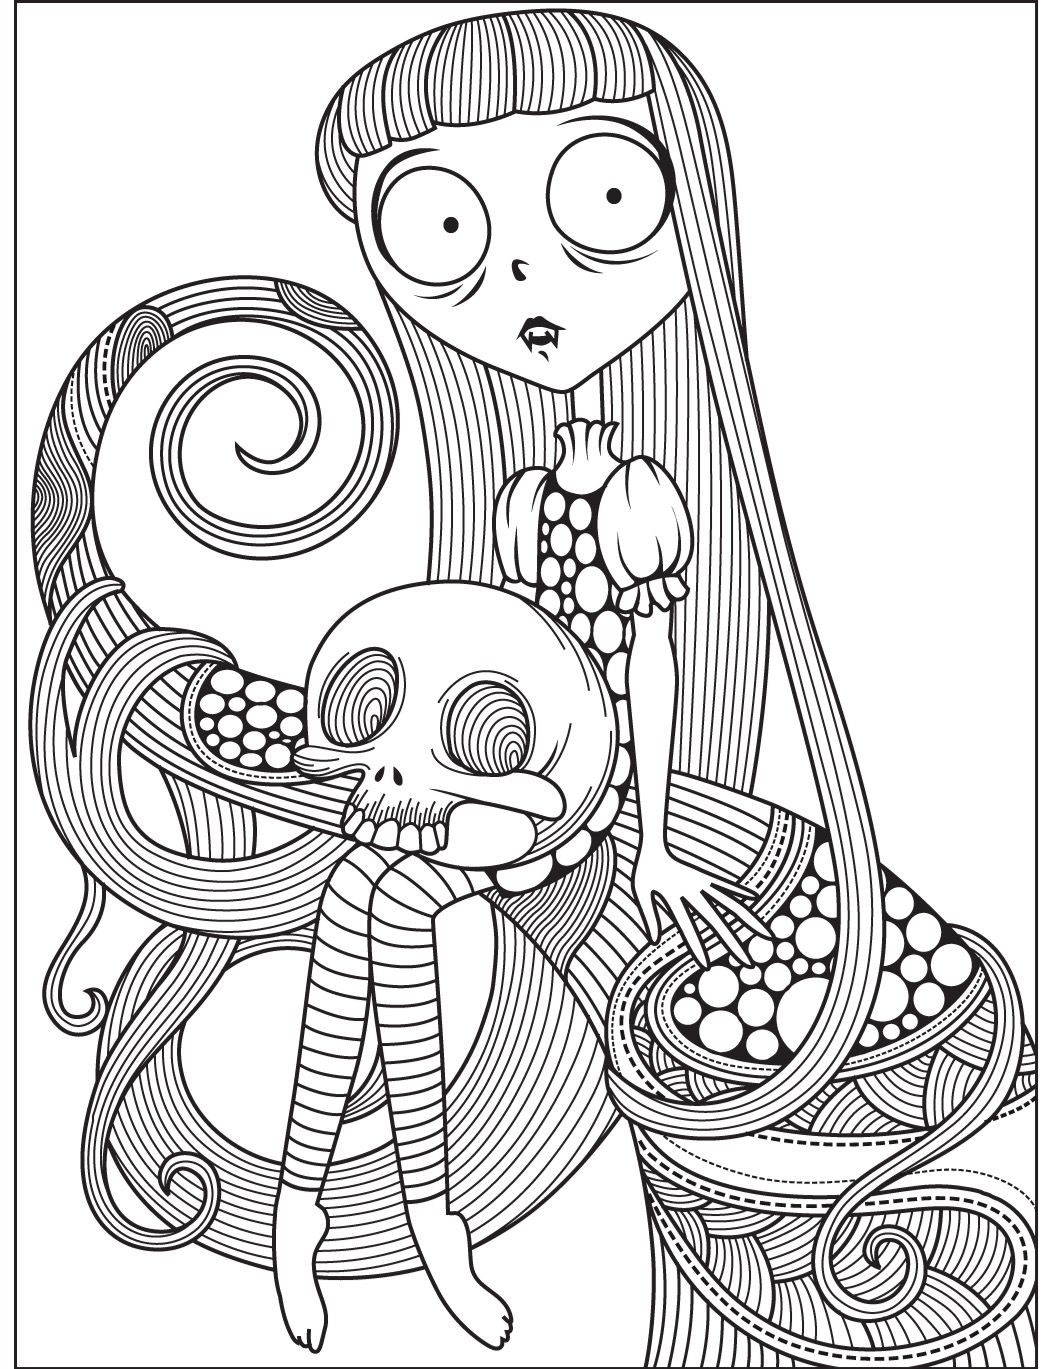 Halloween Coloring Page Colorish Free Coloring App For Adults By Goodsofttech Coloring Books Fairy Coloring Halloween Coloring Pages